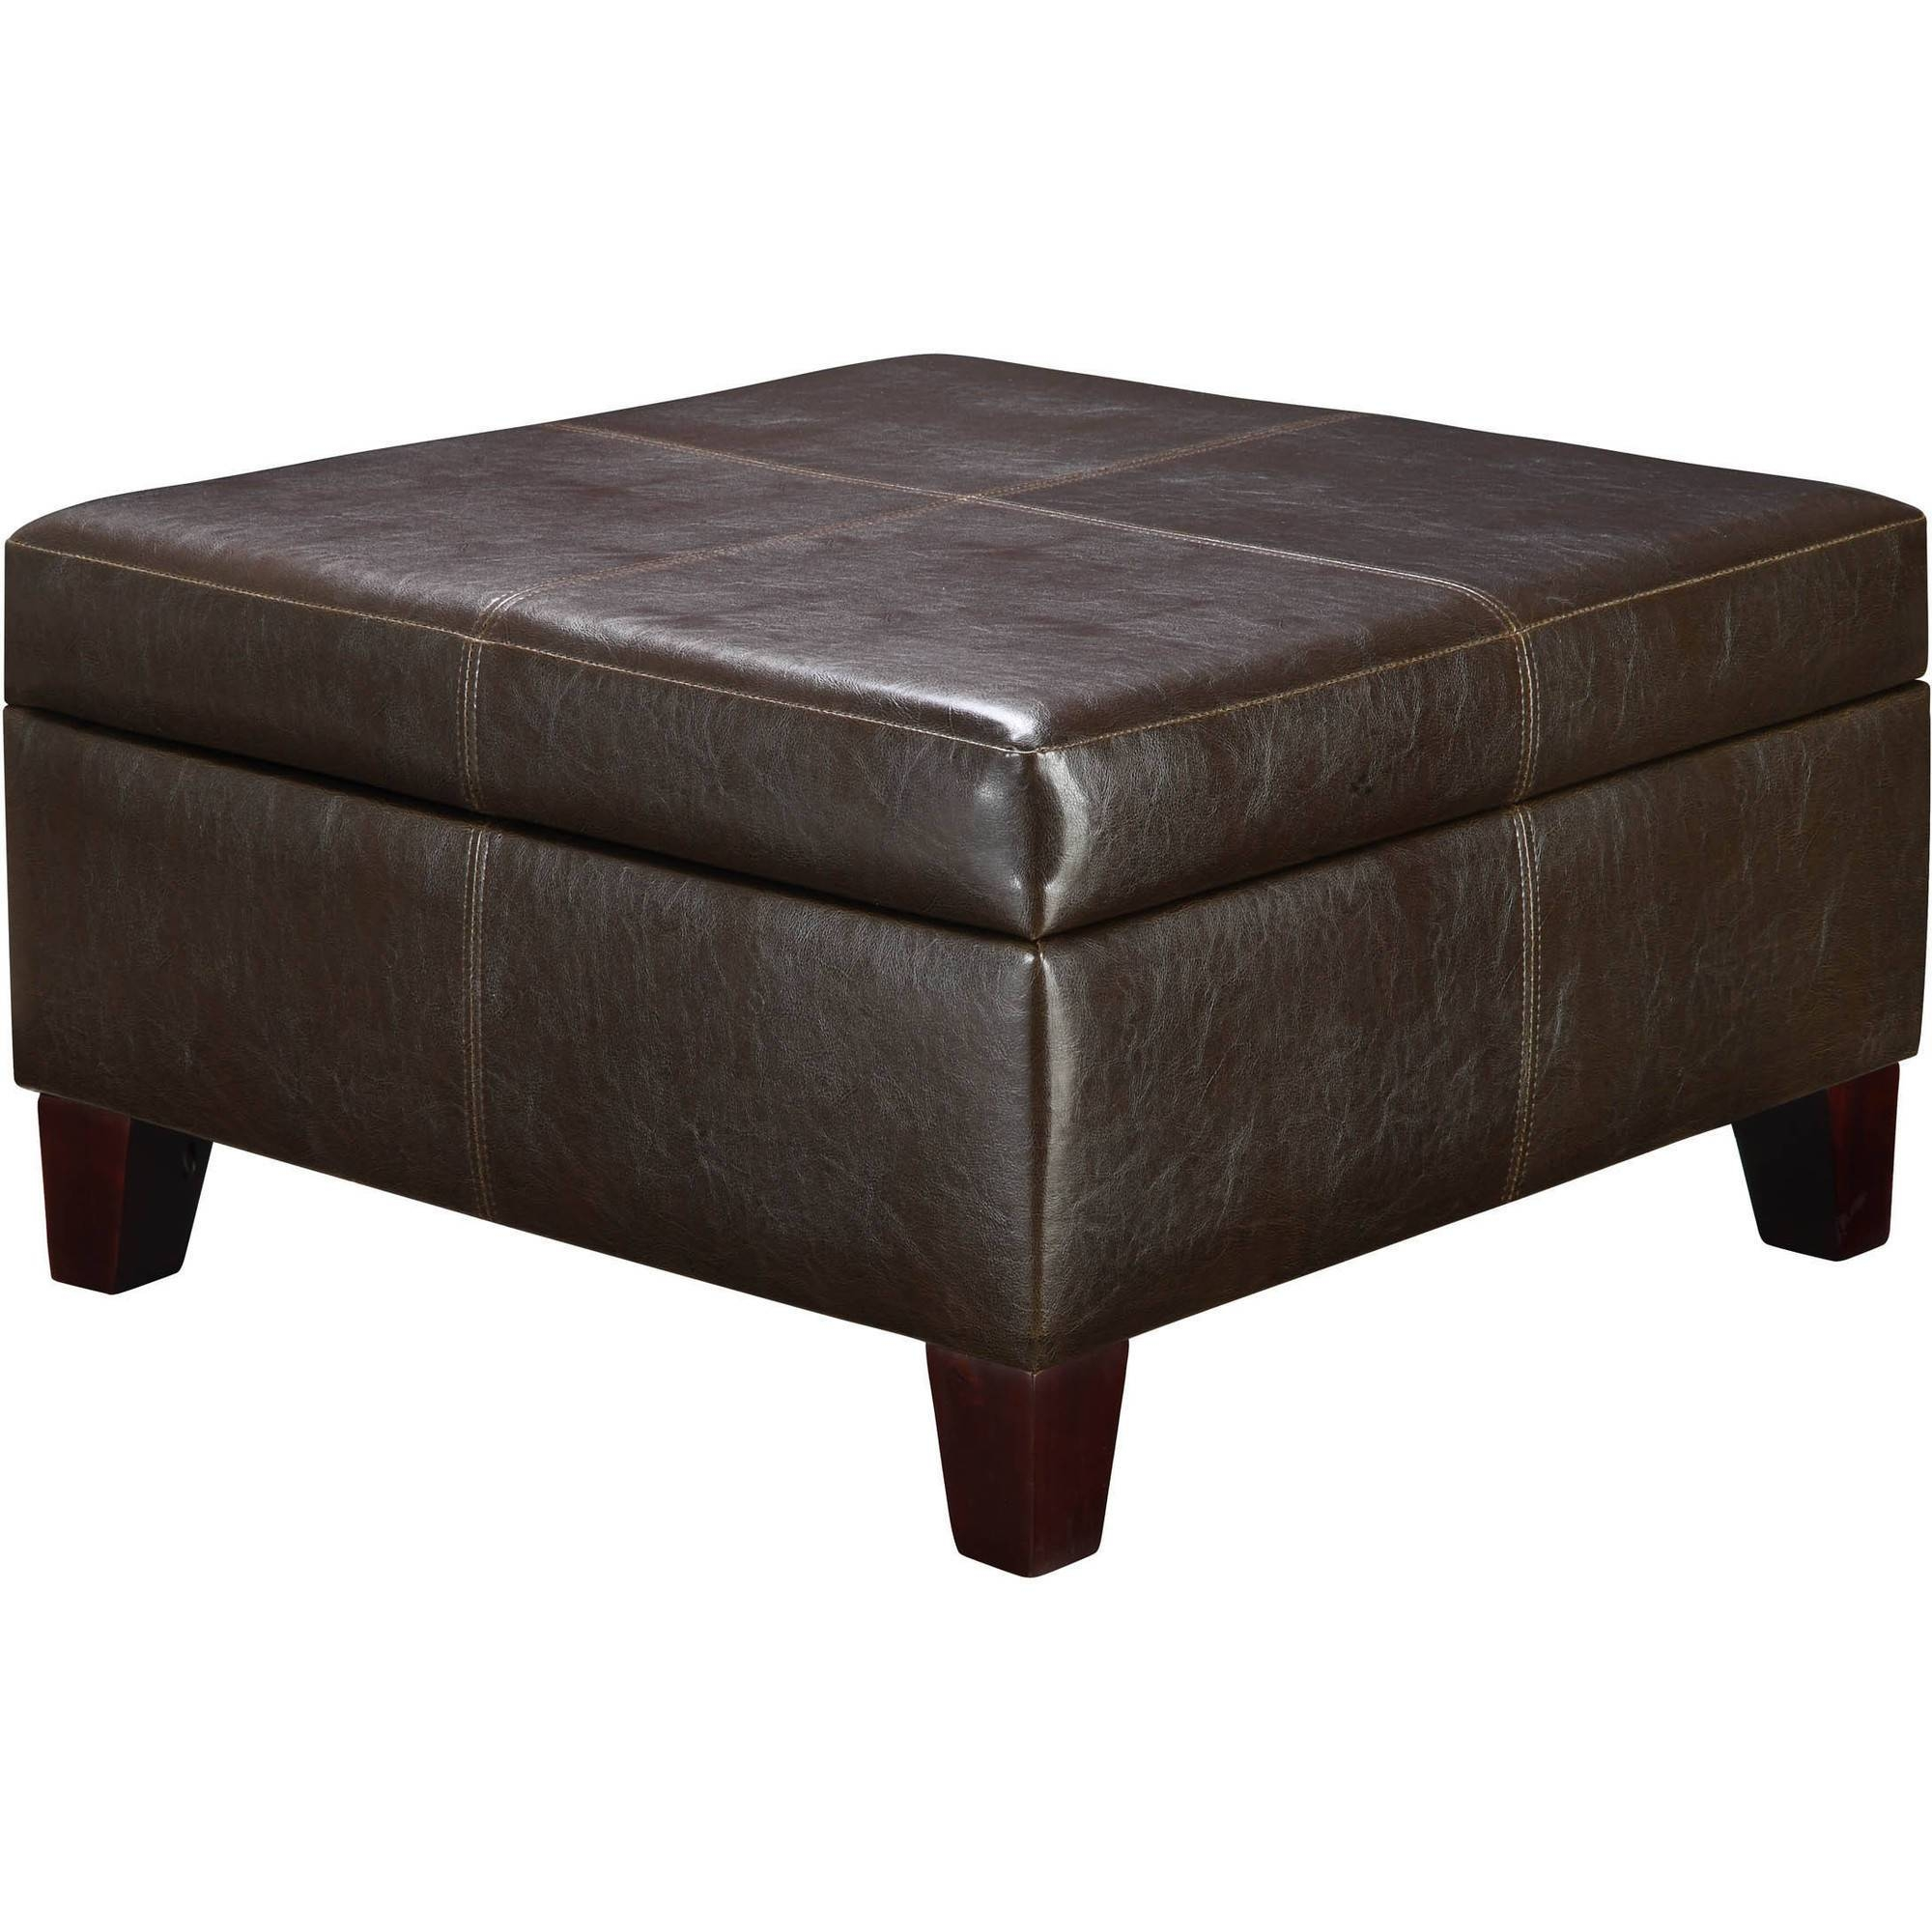 Dorel Living Square Storage Ottoman, Multiple Colors - Walmart with regard to Storage Coffee Tables (Image 17 of 30)